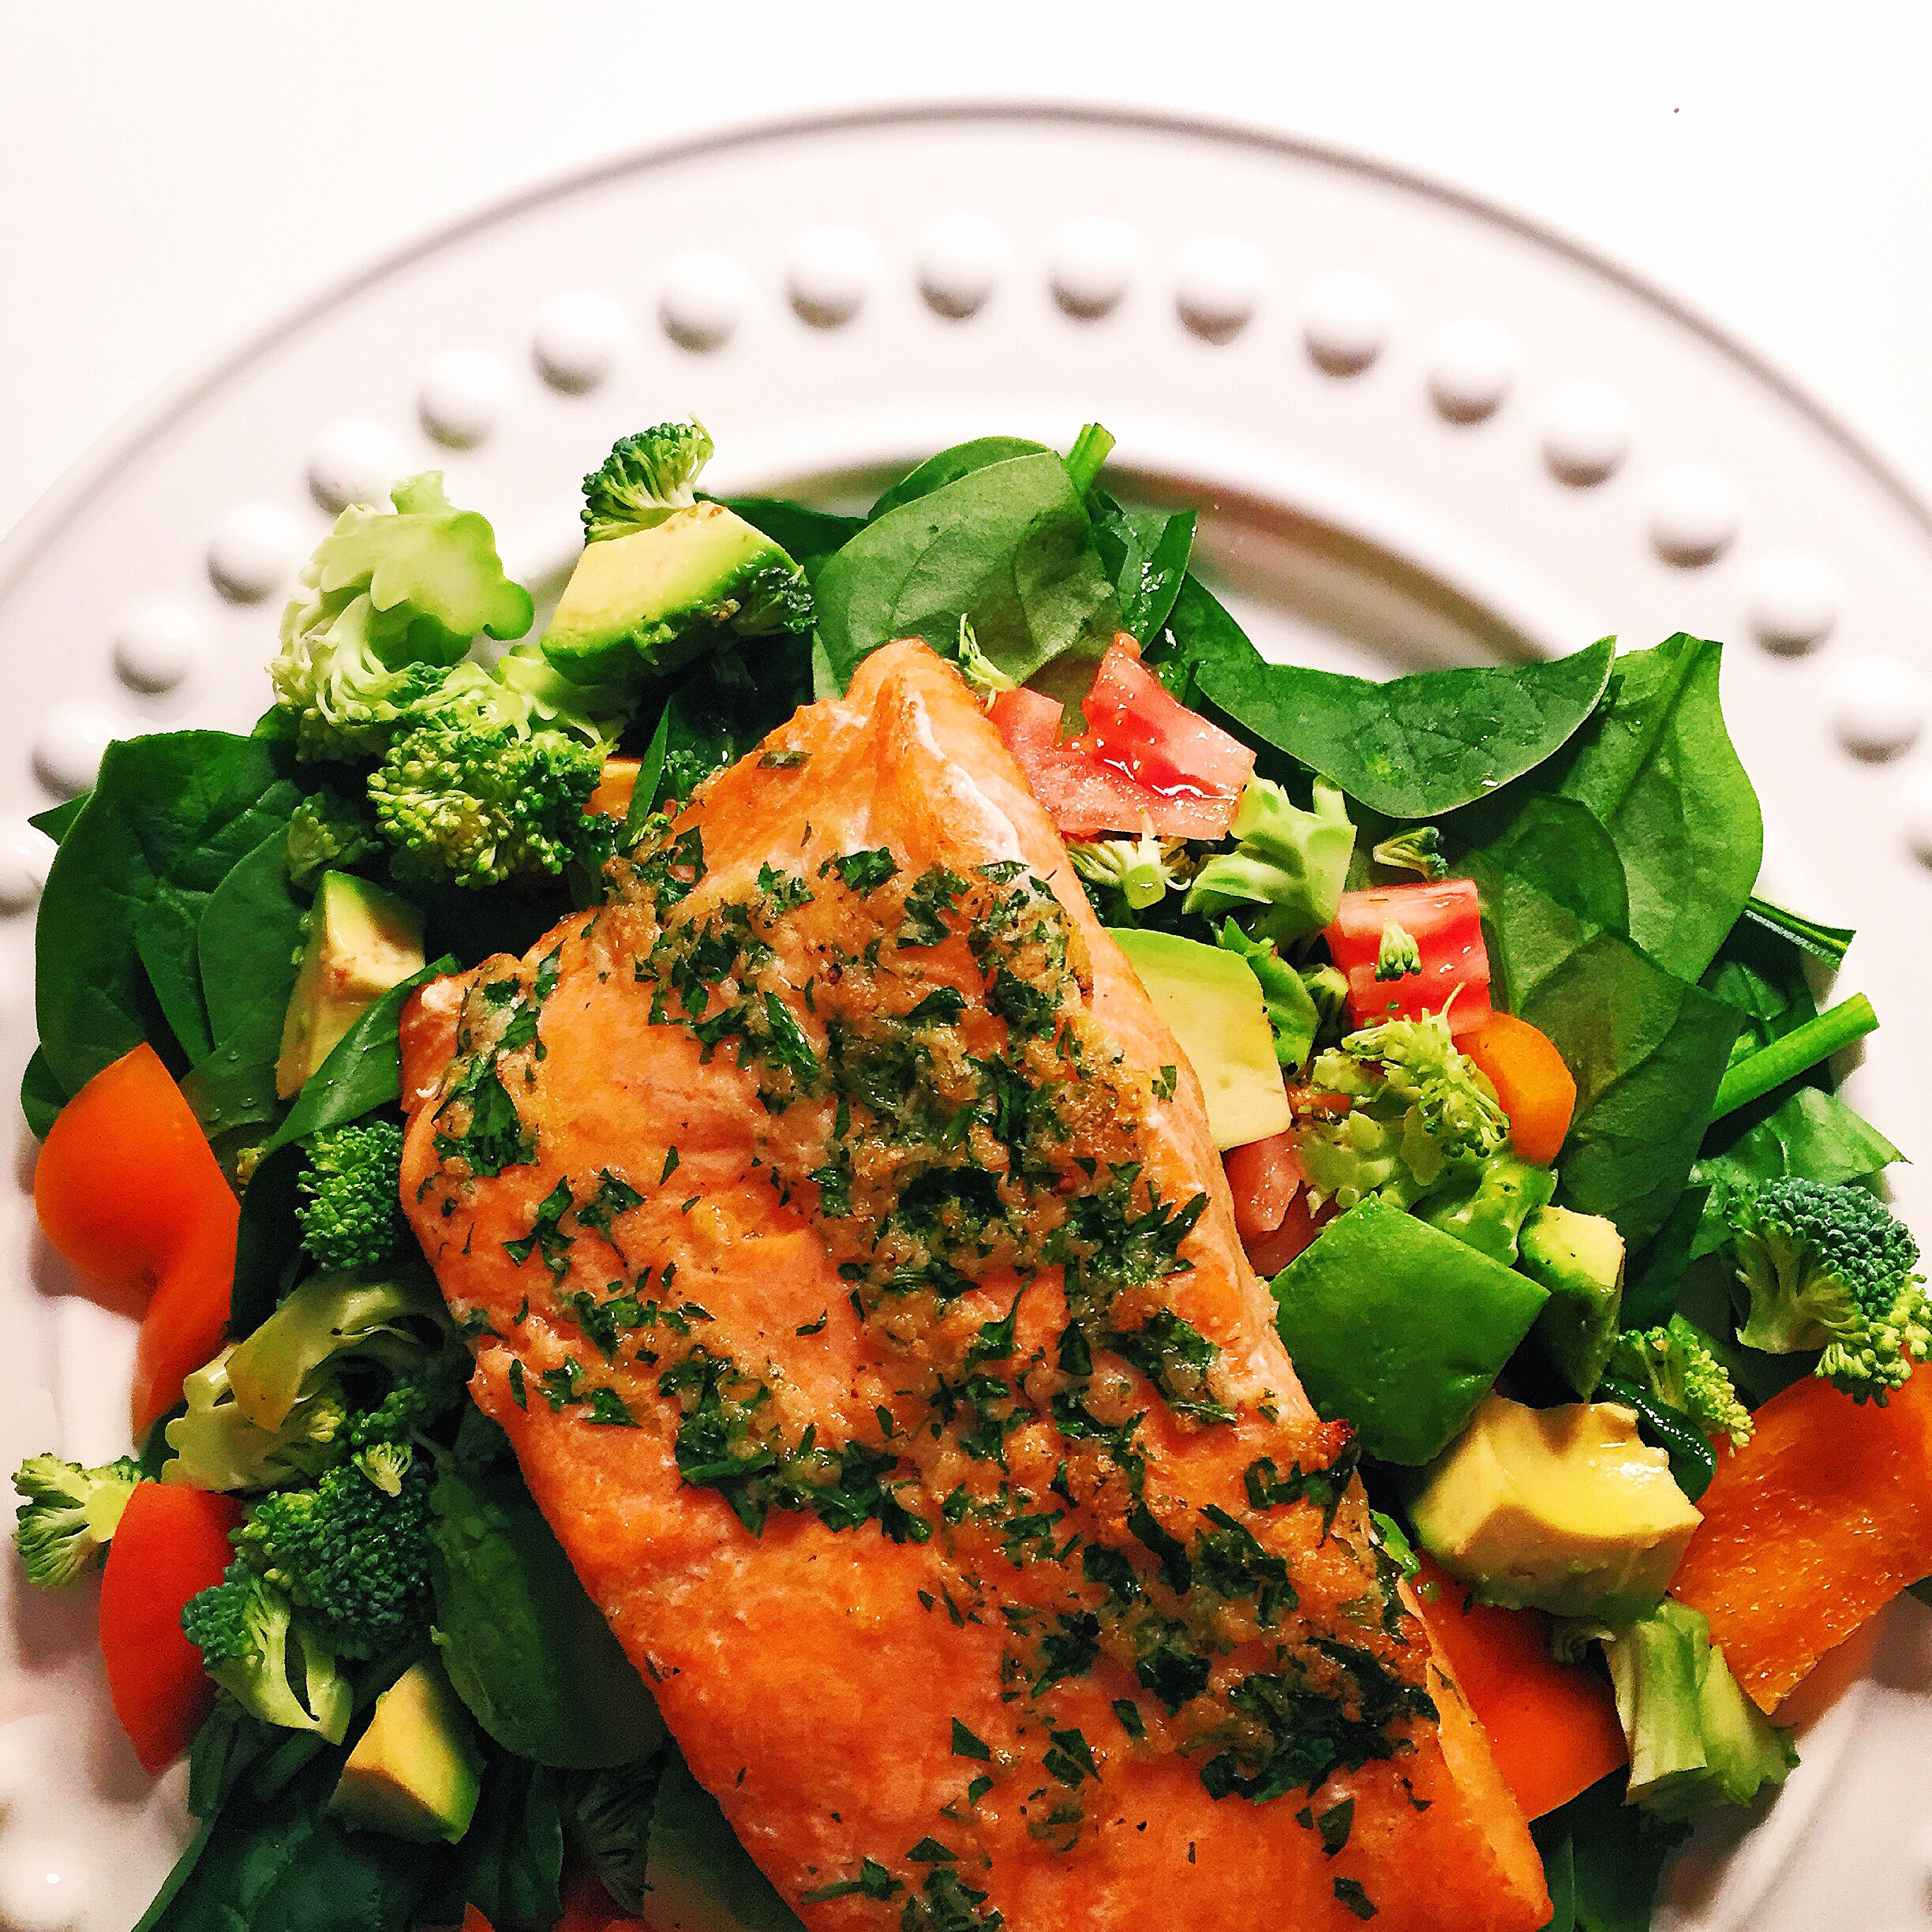 Broiled salmon over spinach salad